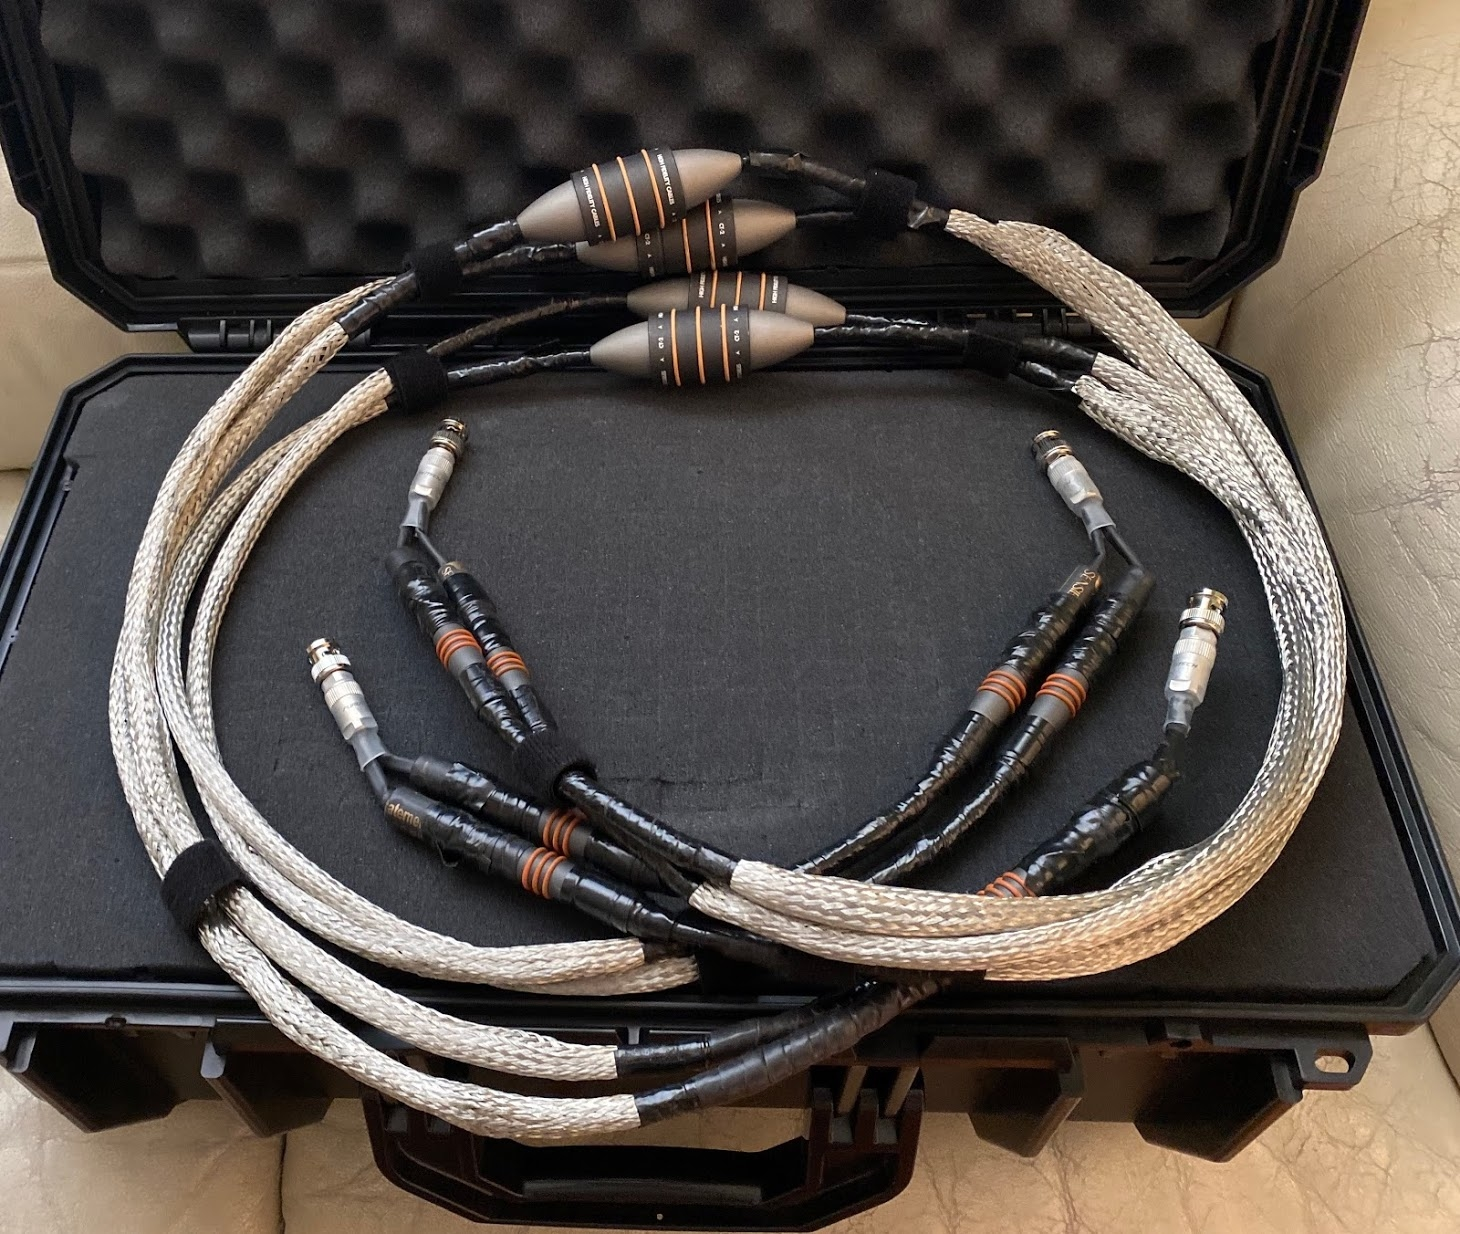 FS: Pair of HFC CT-2 S/PDIF cables (Schroeder config)